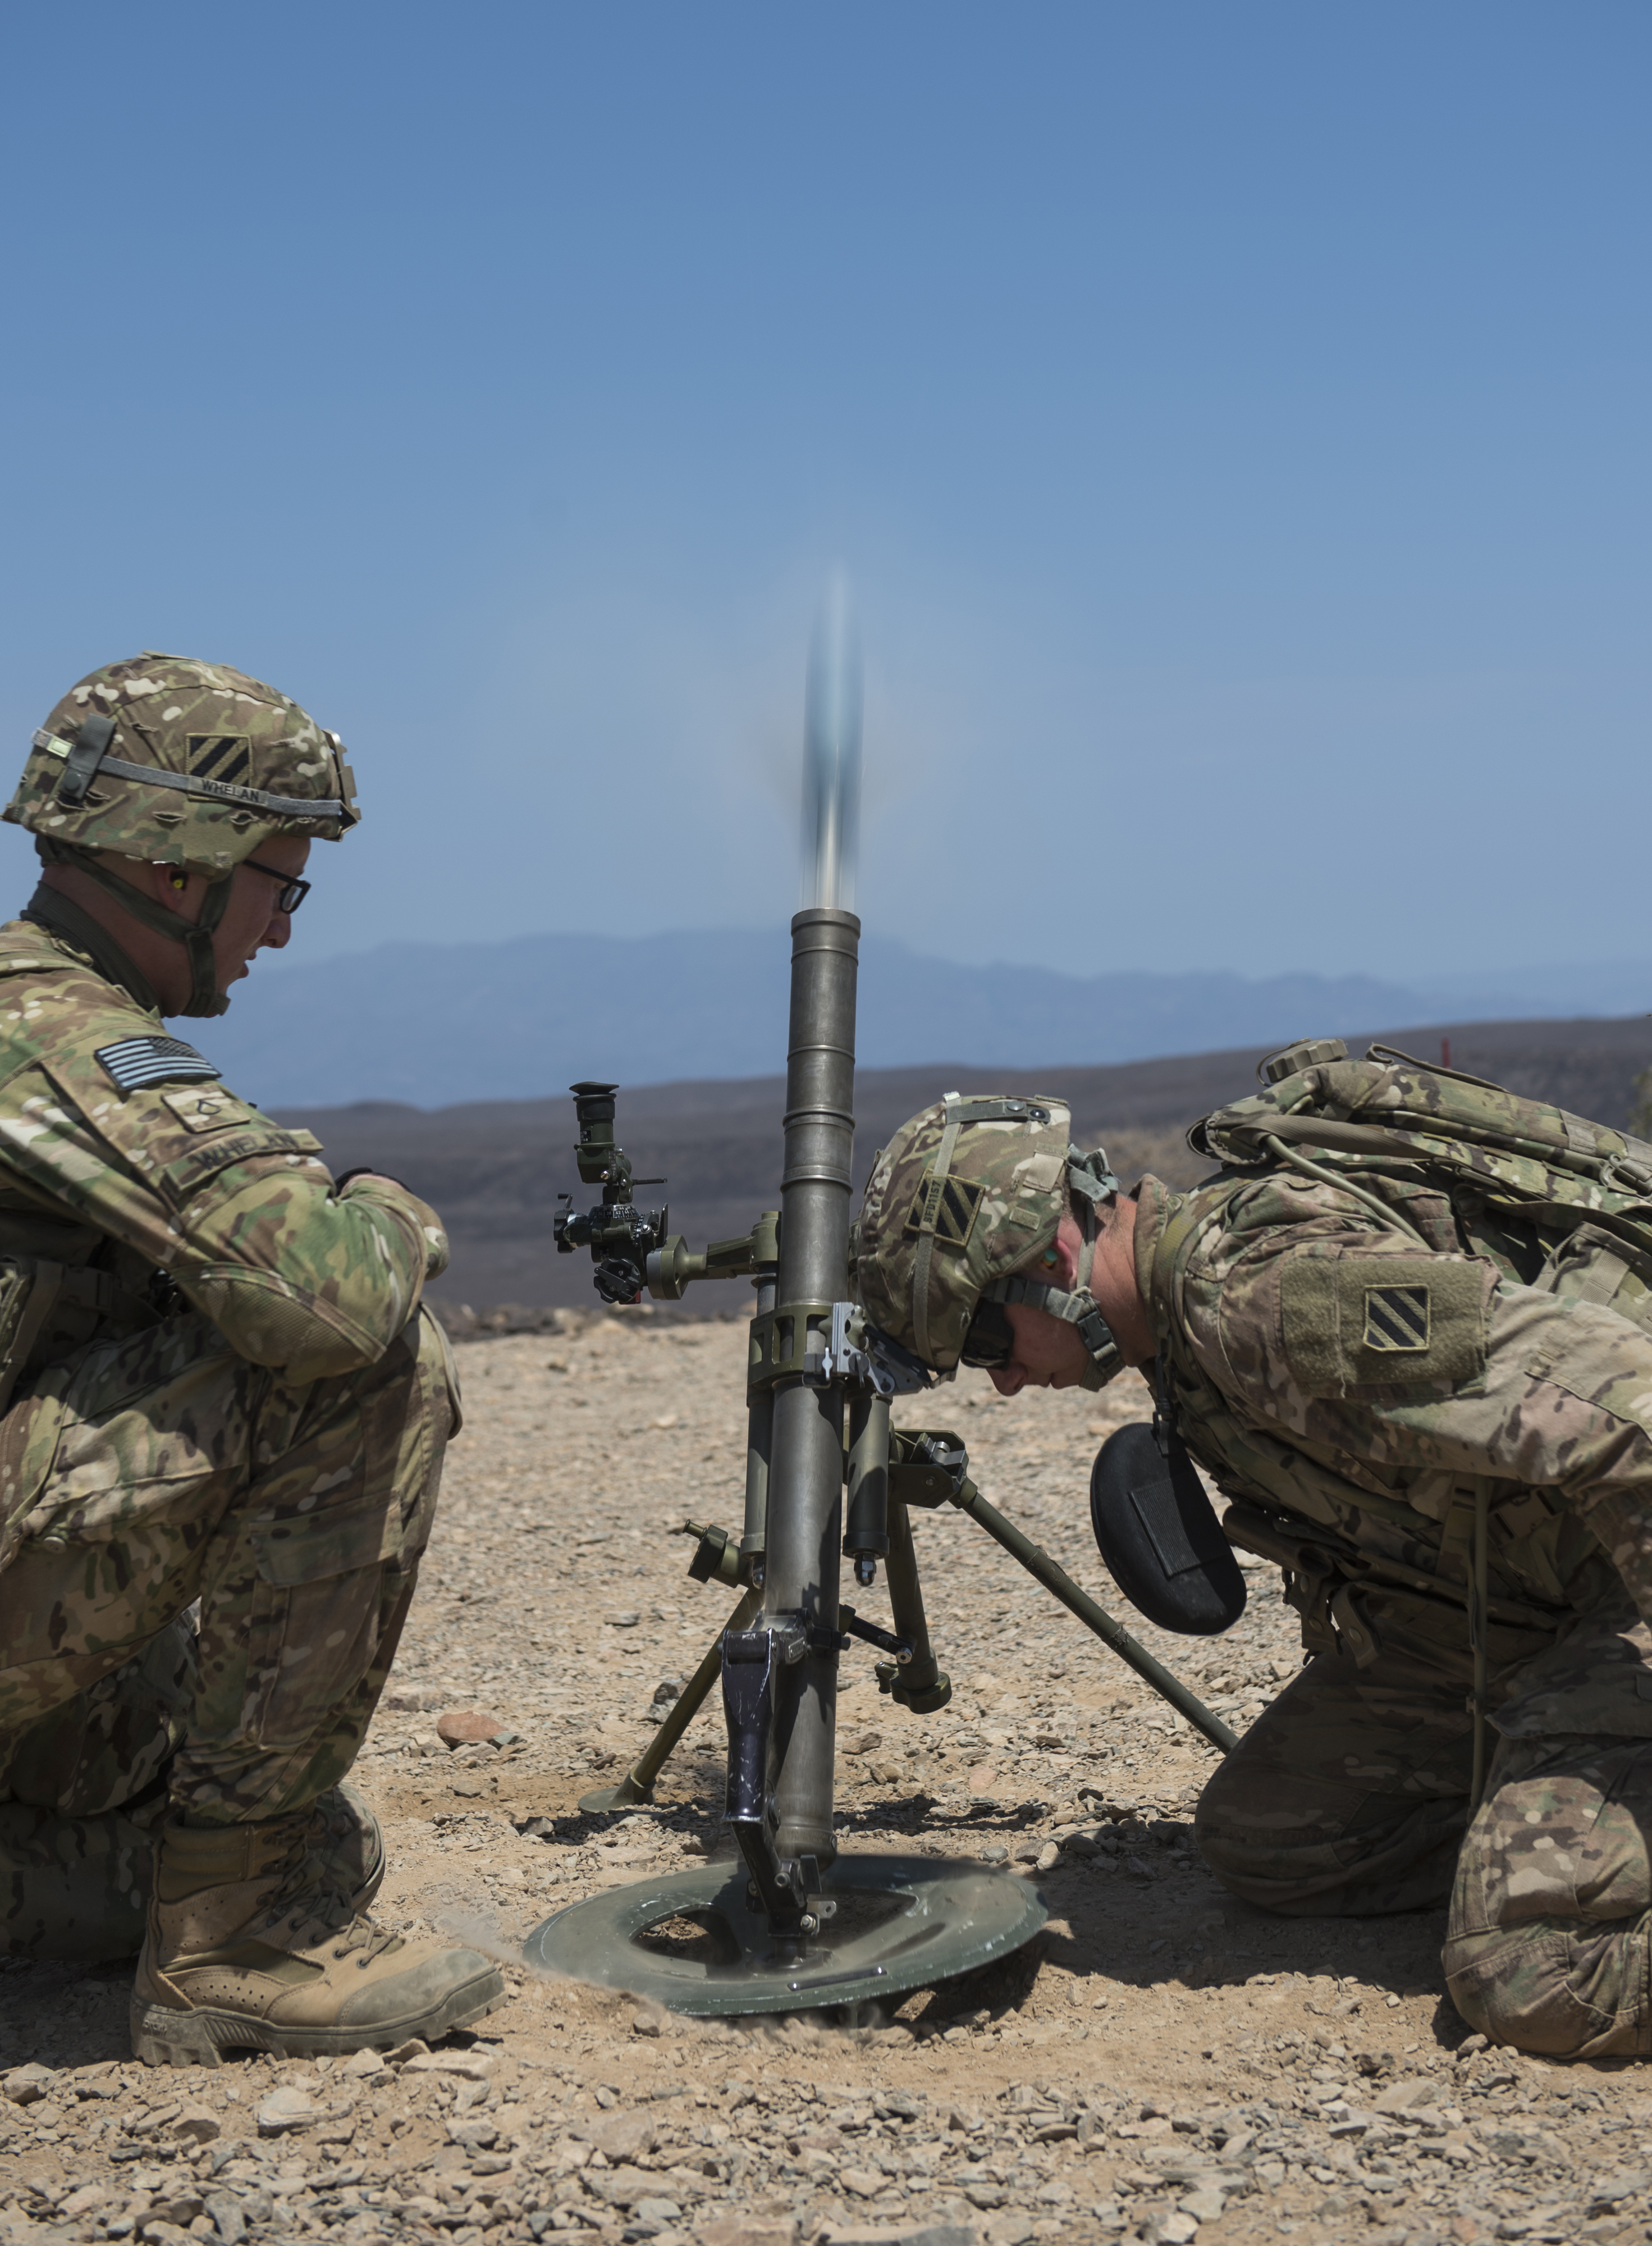 U.S. Army Pfc. Stephan Whelan, mortar gunner, left, and Spc. Steven Doherty, both assigned to Alpha Company, 3rd Battalion, 15th Infantry Regiment, operate a M224 60mm mortar launcher during a training scenario Oct. 12, 2015, in Arta, Djibouti. ACO operates using light infantry and various other force enablers to accomplish their mission. (U.S. Air Force photo by Senior Airman Peter Thompson/Released)